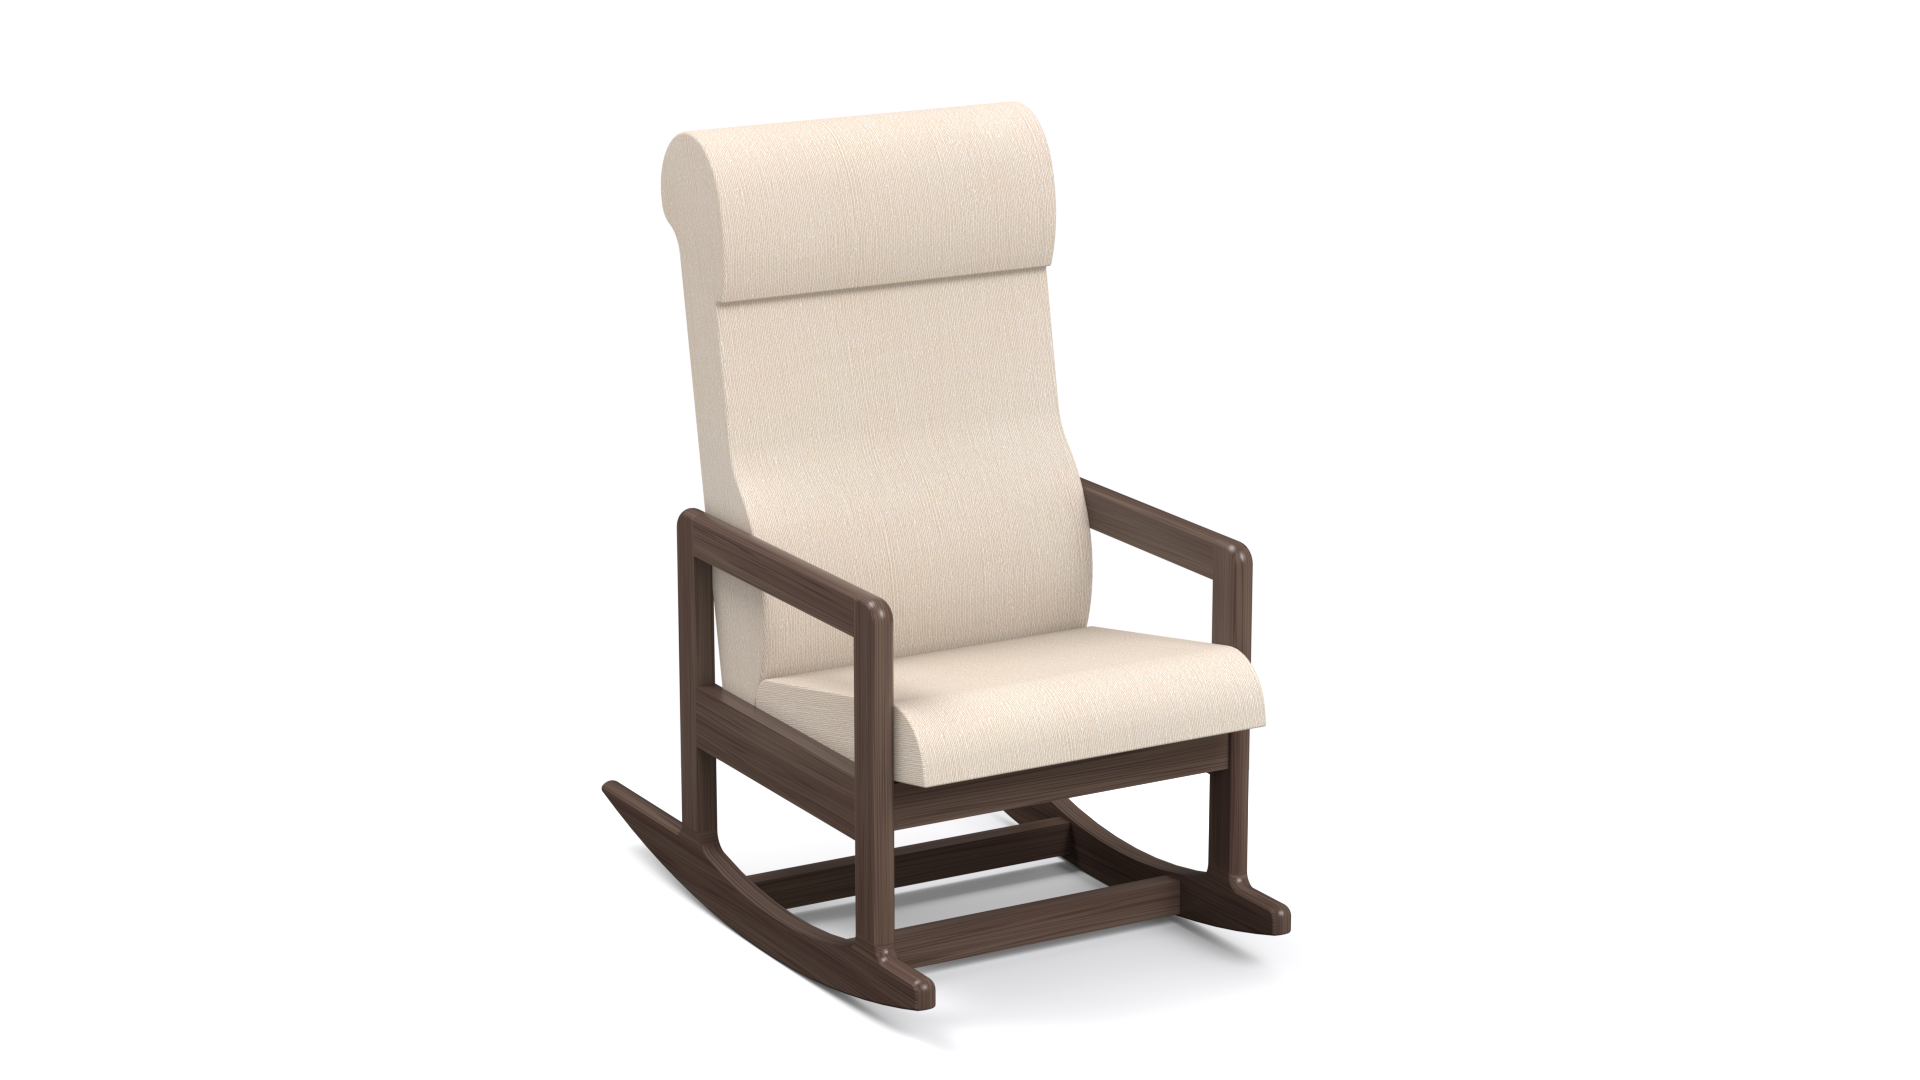 1920x1080 Silhouette Rocker Lounge Chair L924101 Blockhouse Contract Furniture